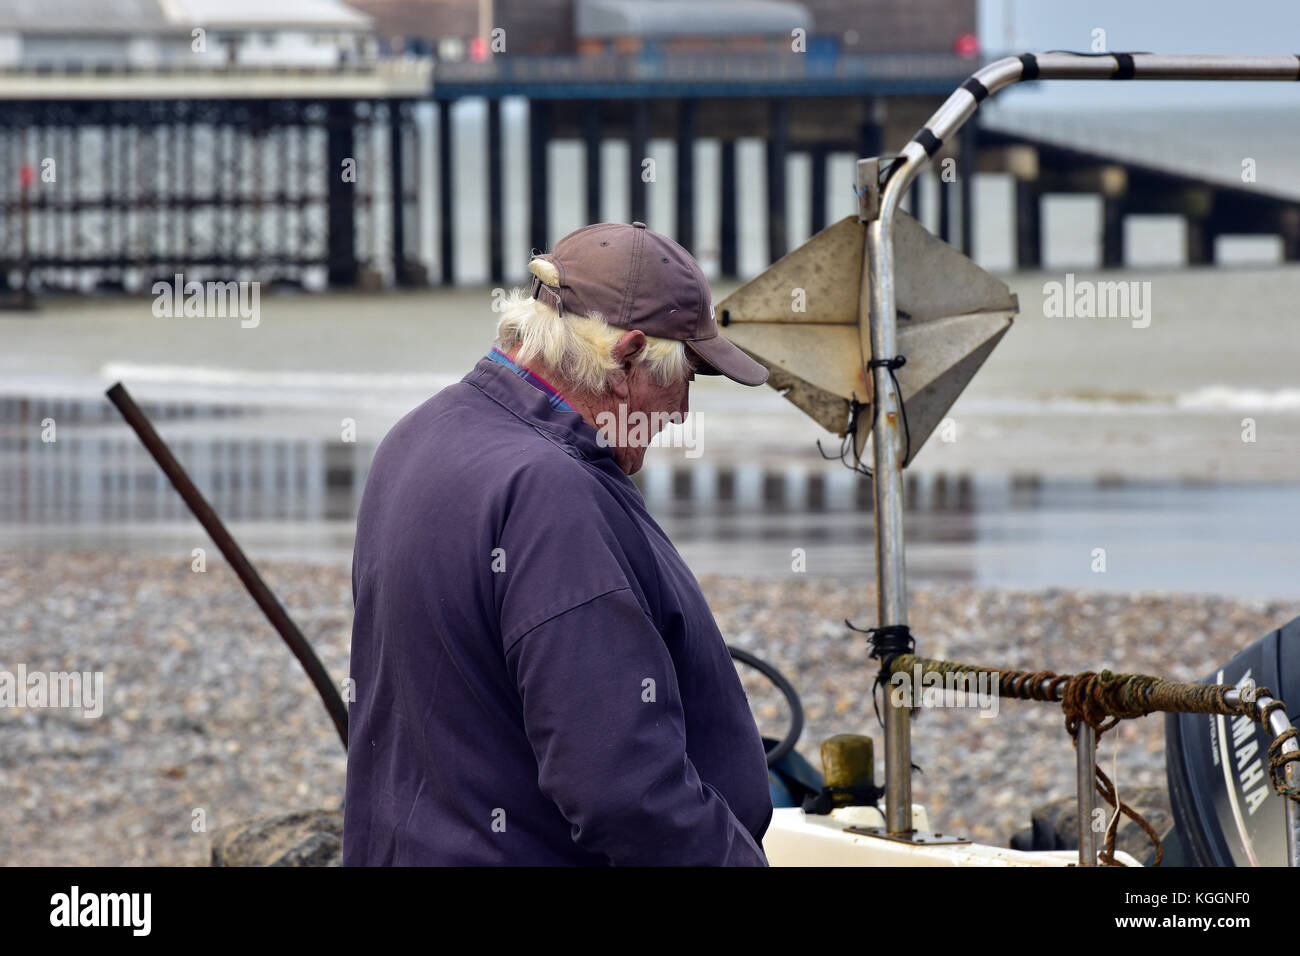 an old fisherman on the beach at Cromer in Norfolk reminiscing about days gone by. Elderly fisherman wearing a cap - Stock Image